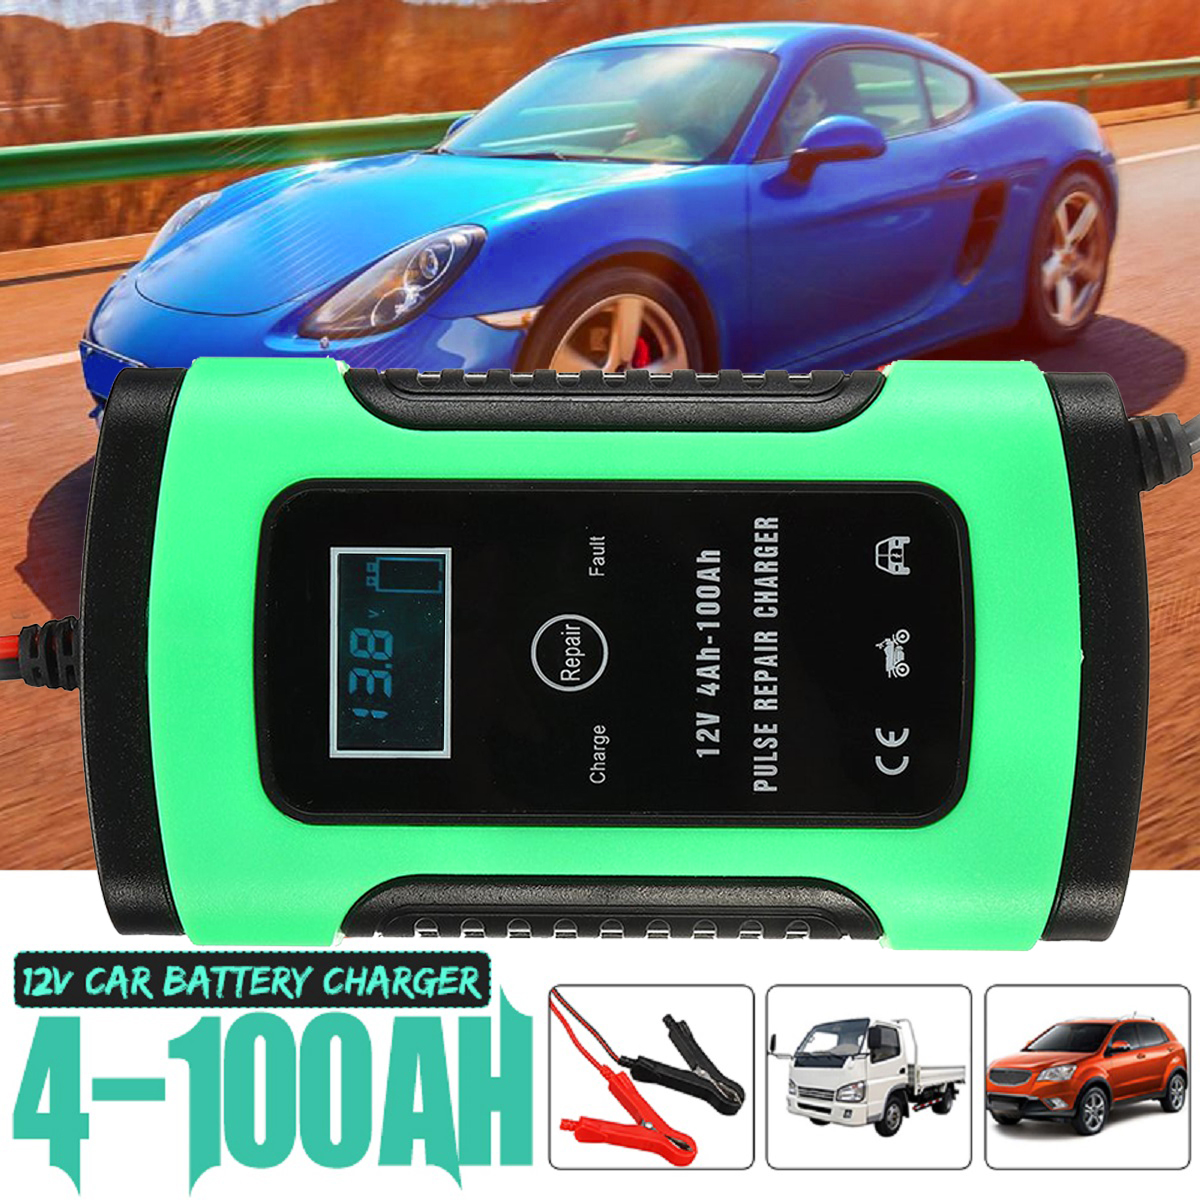 Car-Intelligent-Battery-Charger Jump-Starter Auto New 12V 5A LCD 4-100ah 100-240V Pulse title=